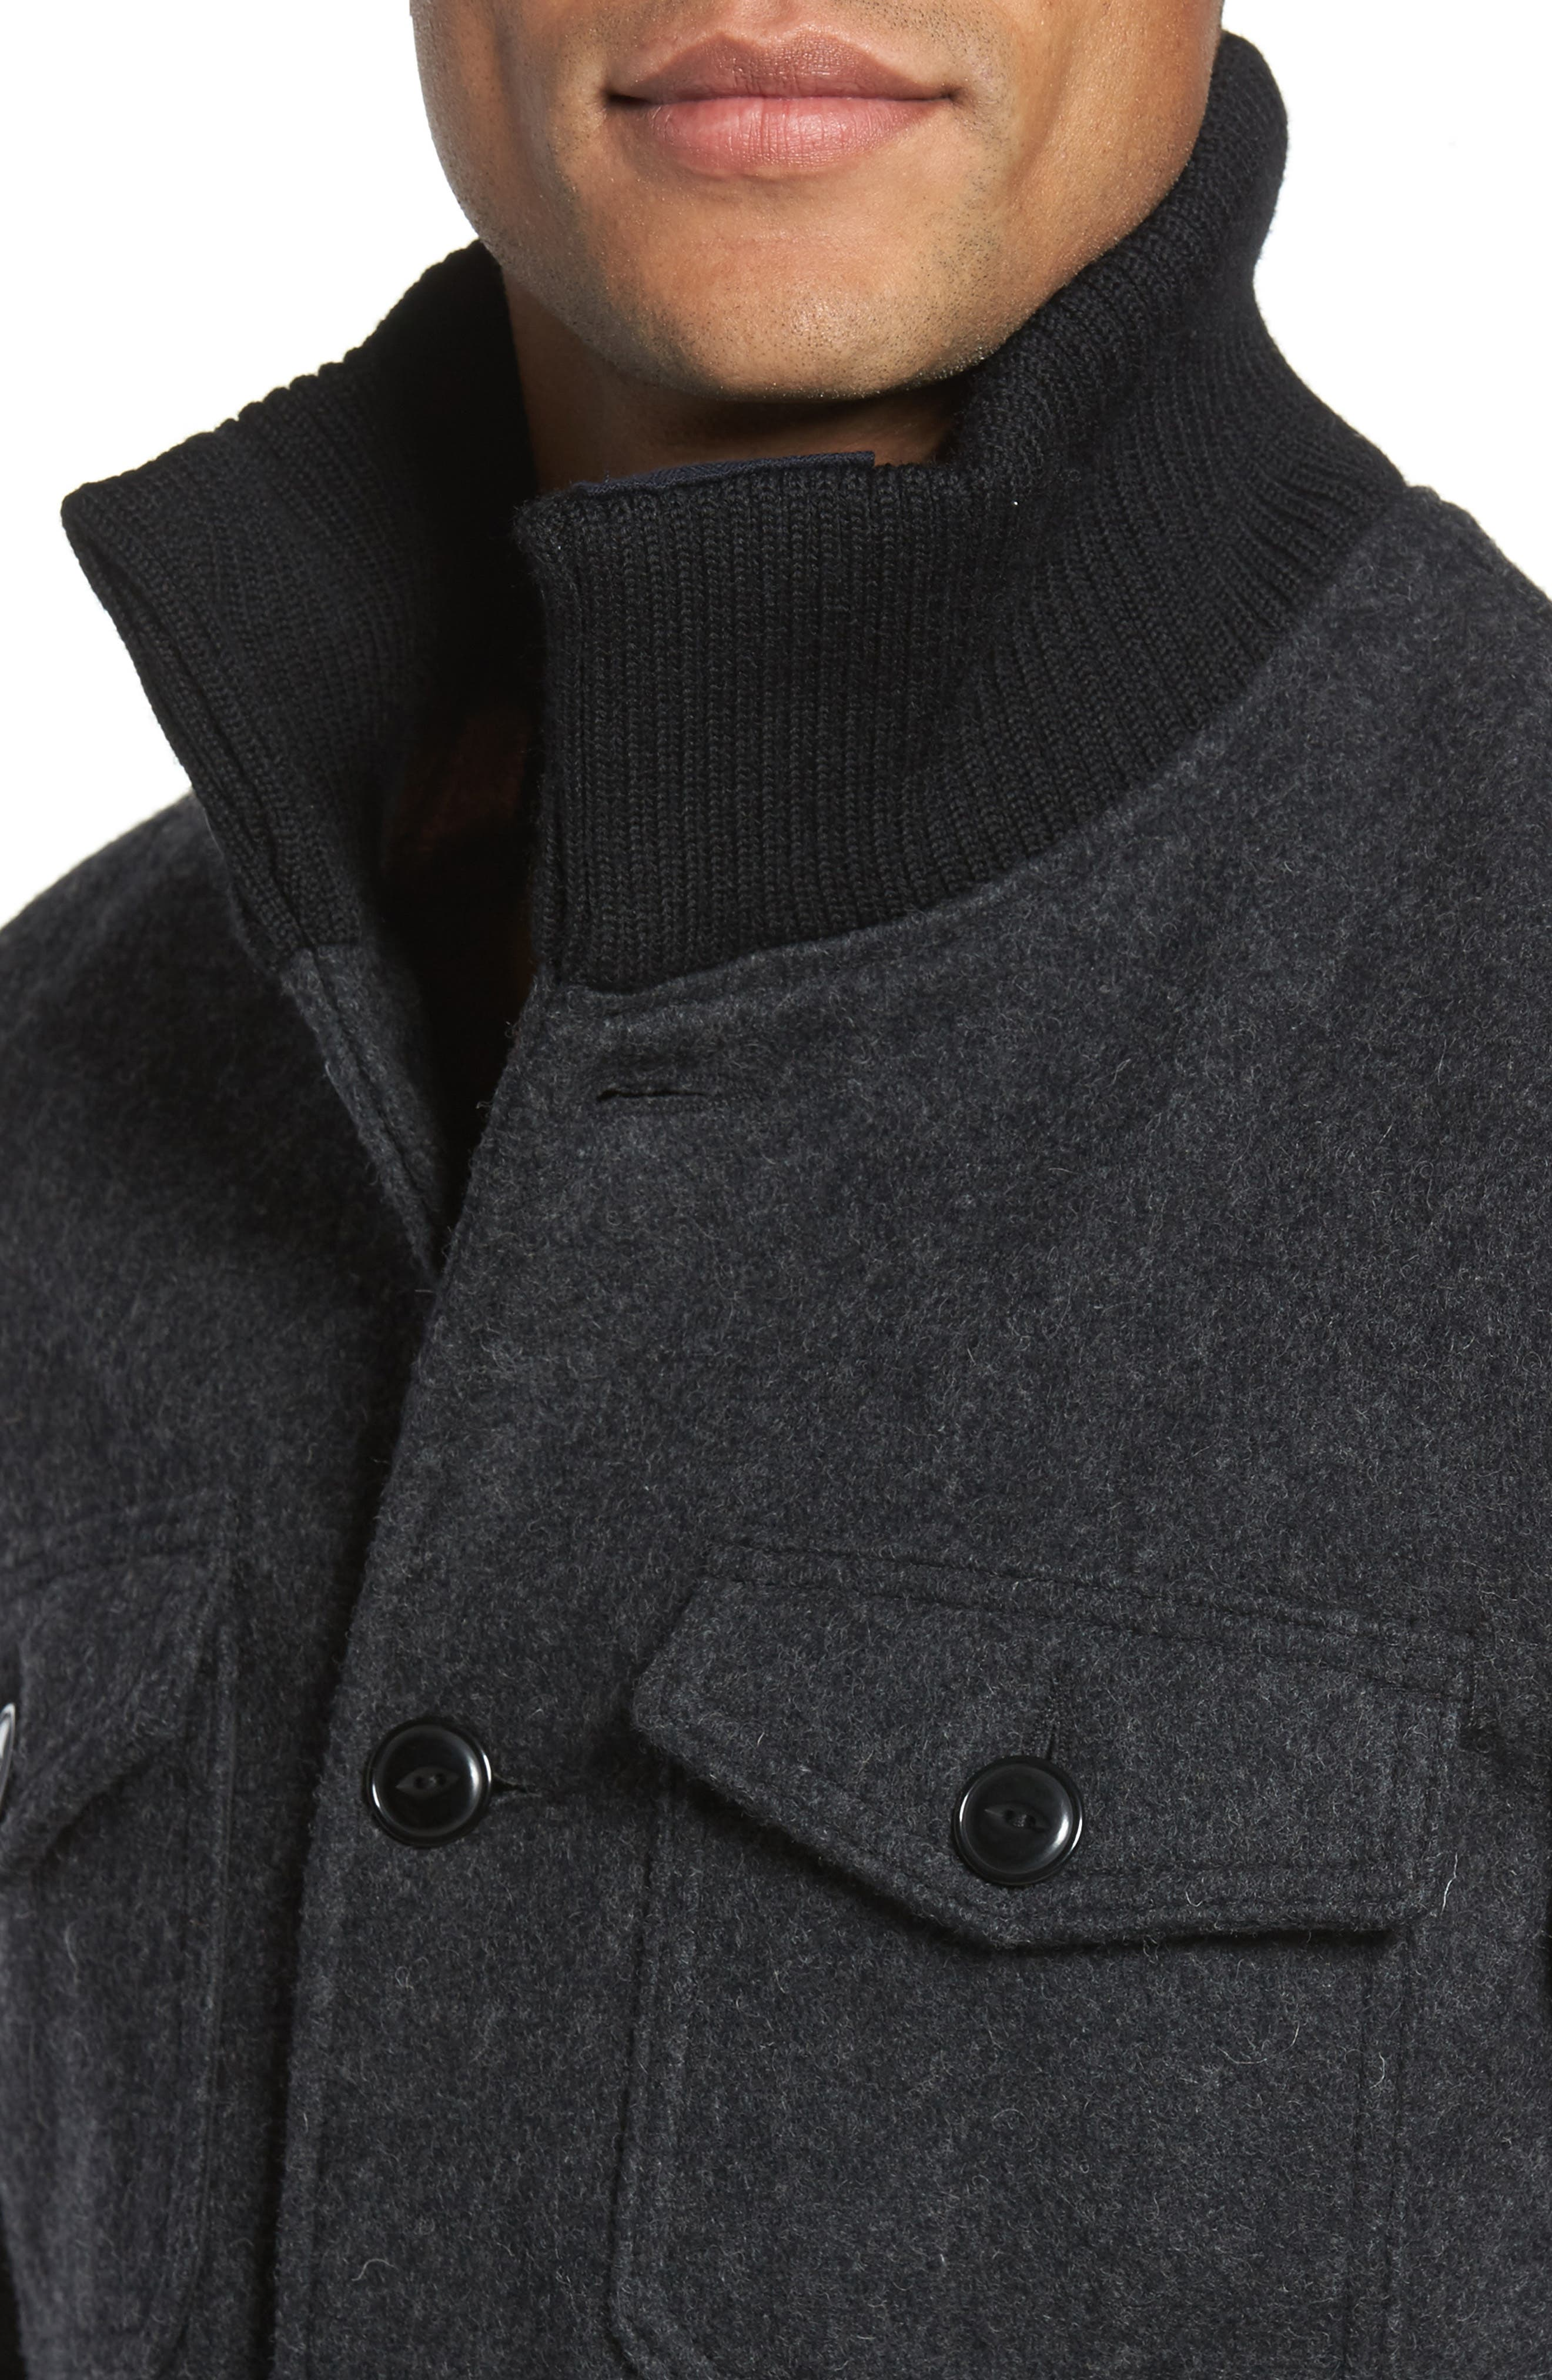 Wool Blend Field Jacket,                             Alternate thumbnail 4, color,                             DARK OXFORD